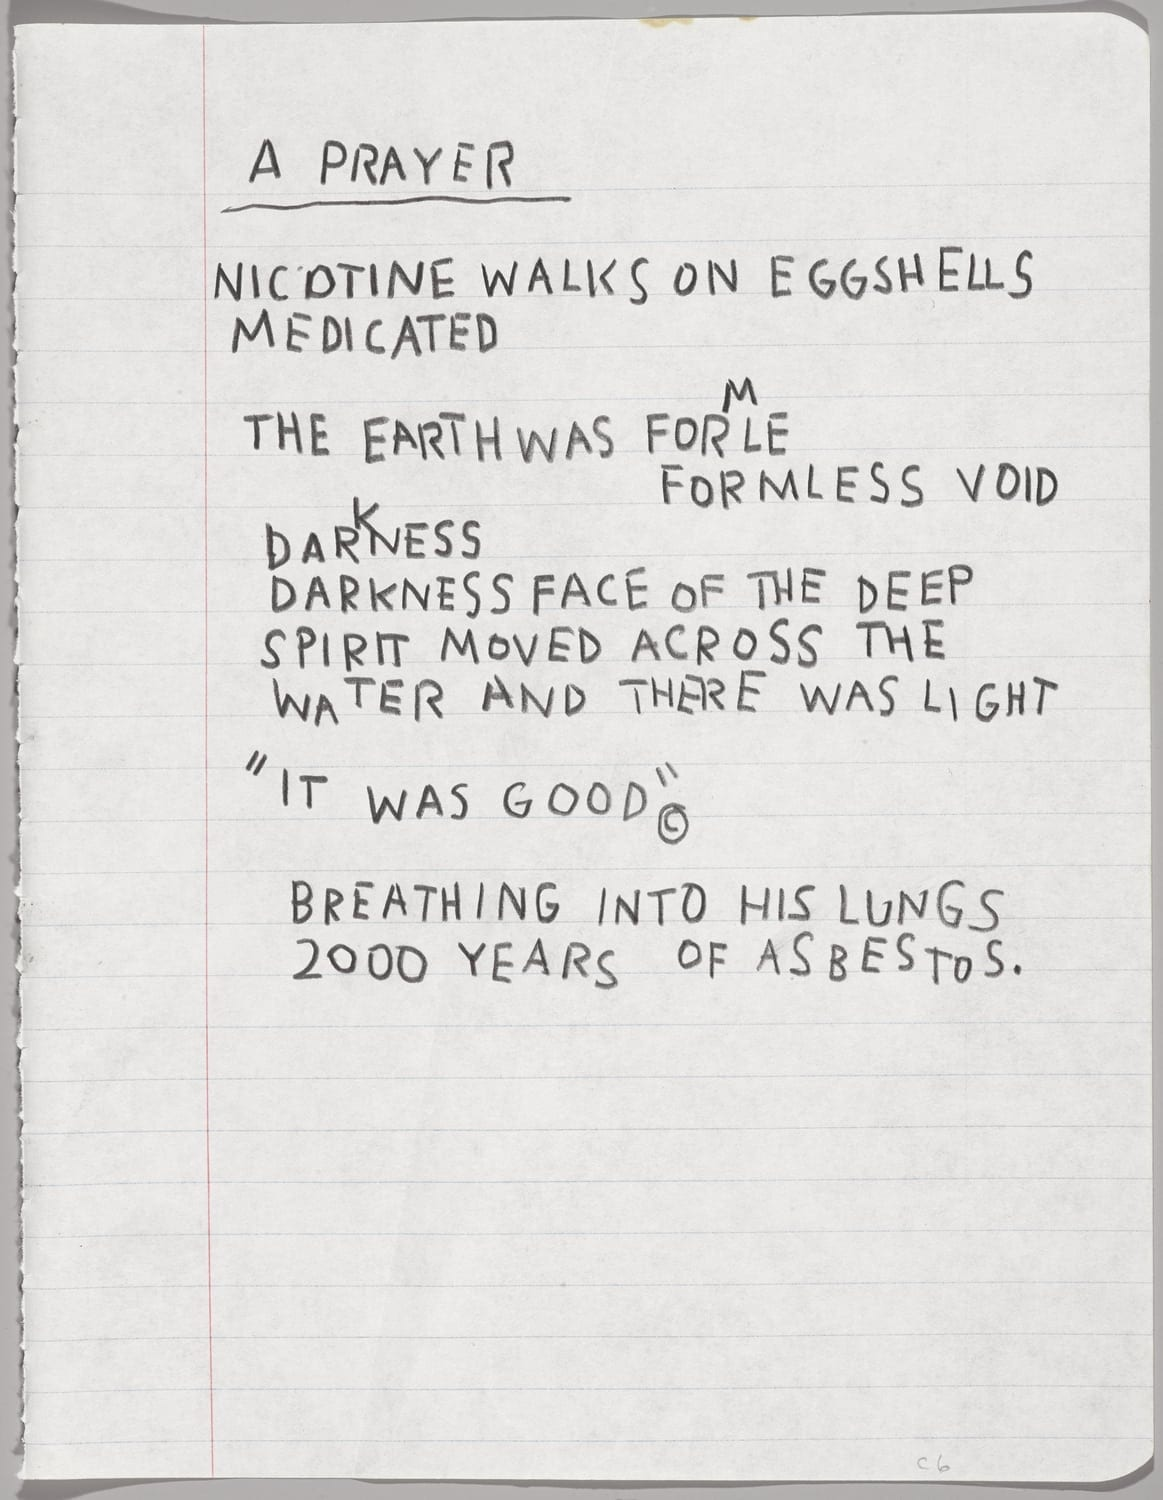 ean-Michel Basquiat (American, 1960–1988). Untitled Notebook Page, ca.1987. Wax crayon on ruled notebook paper, 9 5/8 x 7 5/8 in. (24.5 x 19.4 cm). Collection of Larry Warsh. © Estate of Jean-Michel Basquiat, all rights reserved. Licensed by Artestar, New York. Photo: Sarah DeSantis, Brooklyn Museum.